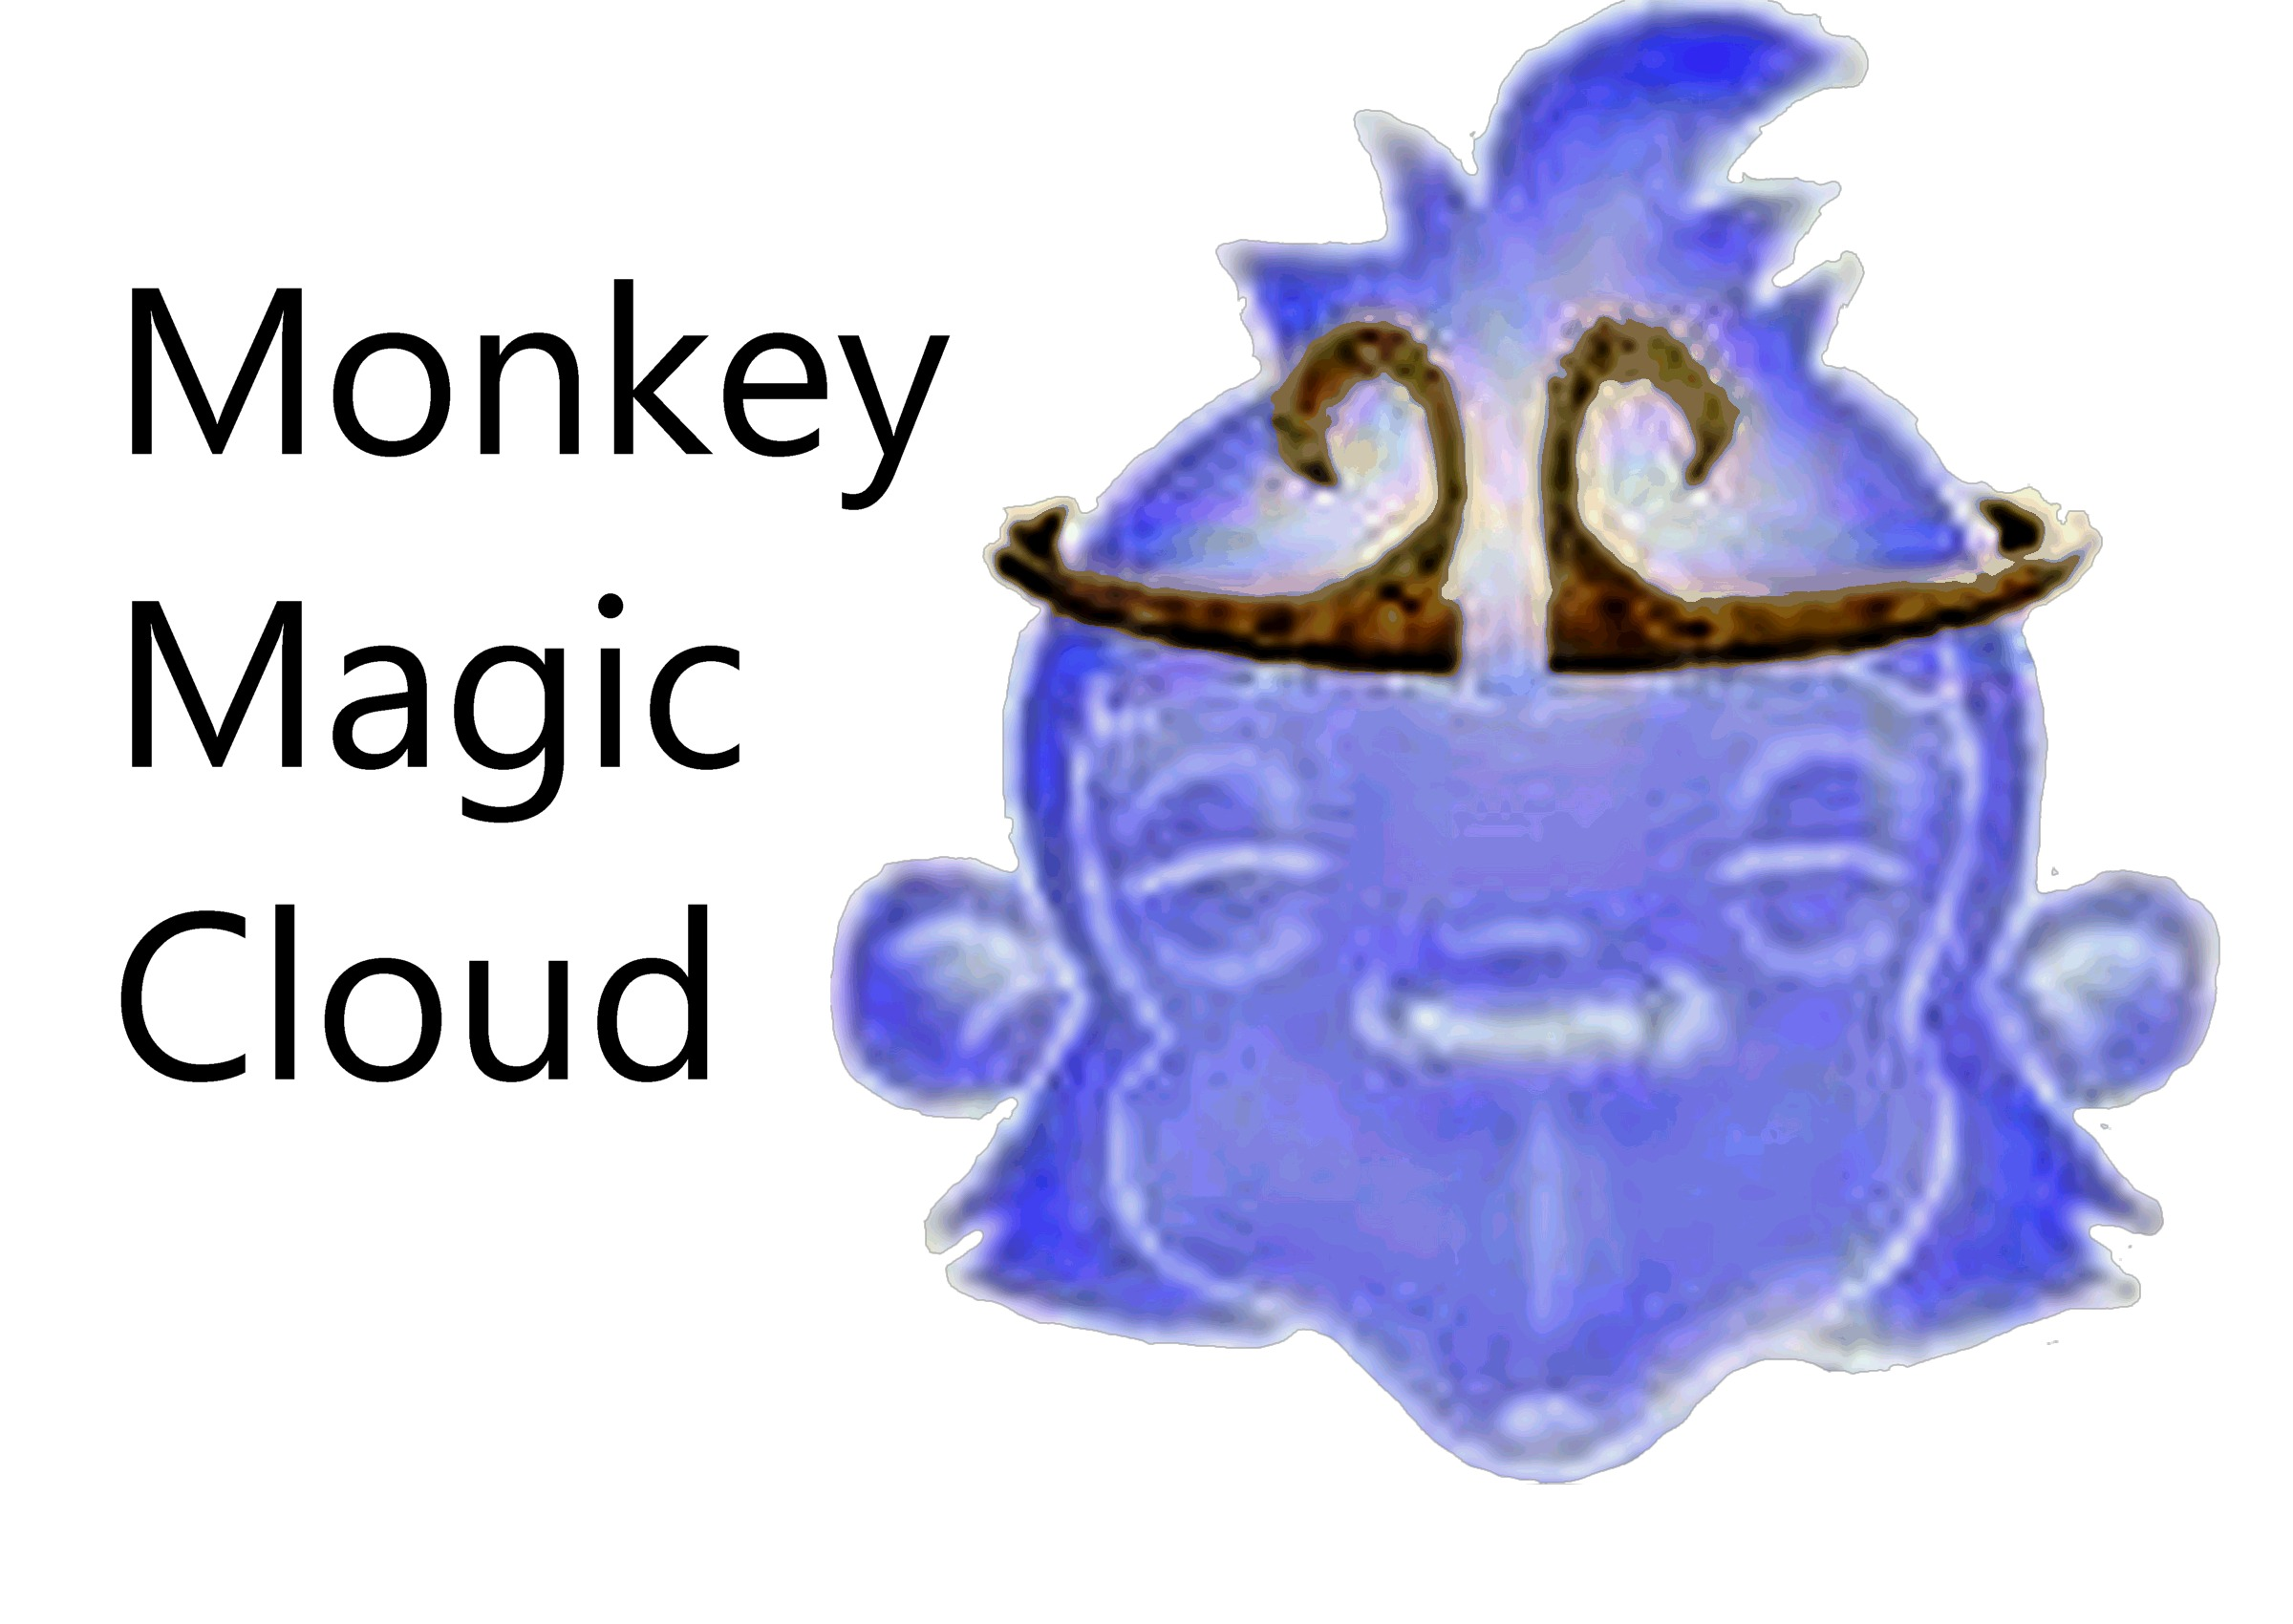 Monkey Magic Cloud -Website, Hosting, Domains, eMail, Marketing, Security